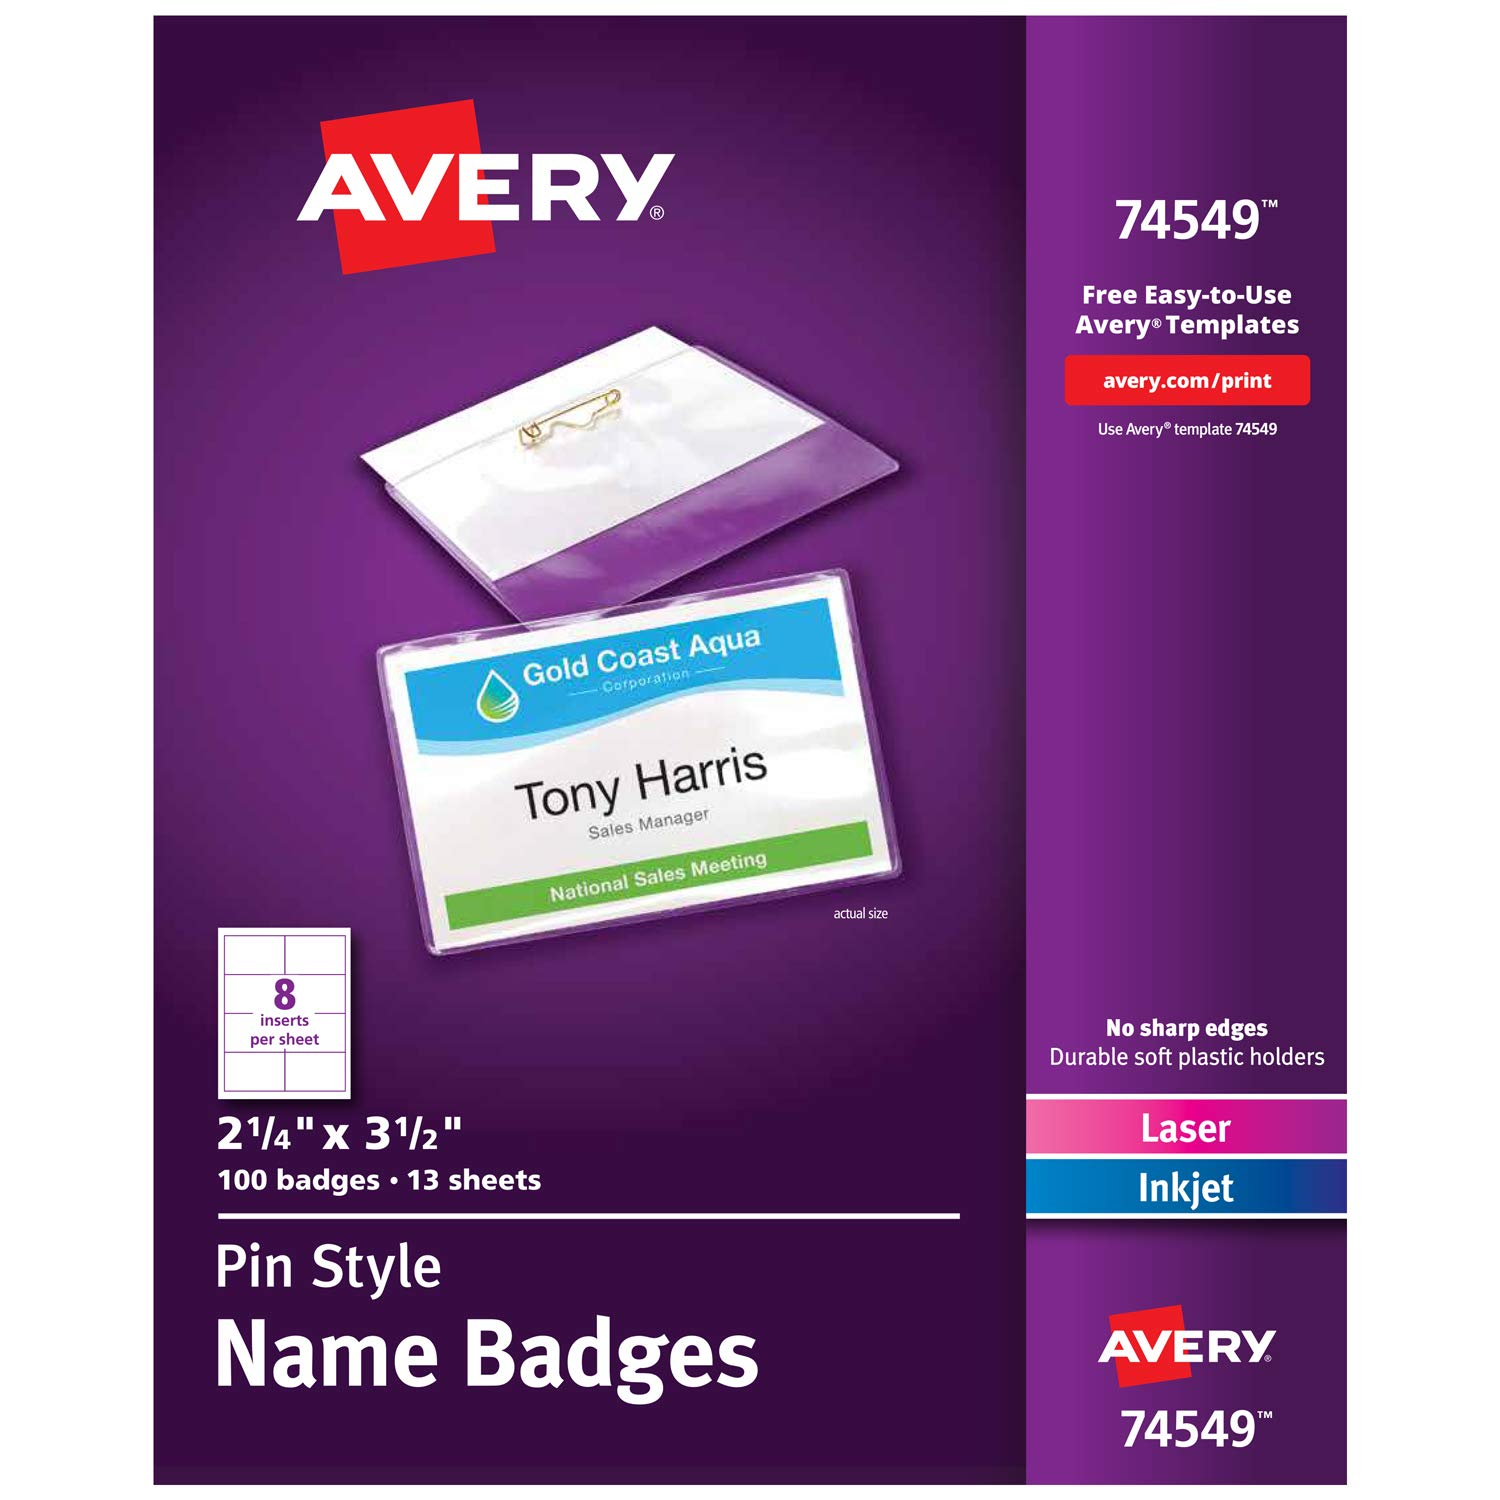 Avery Pin Style Name Badges, Print or Write, 2-1/4'' x 3-1/2'',  Pins Securely, 100 Inserts & Pin Badge Holders (74549), White by AVERY